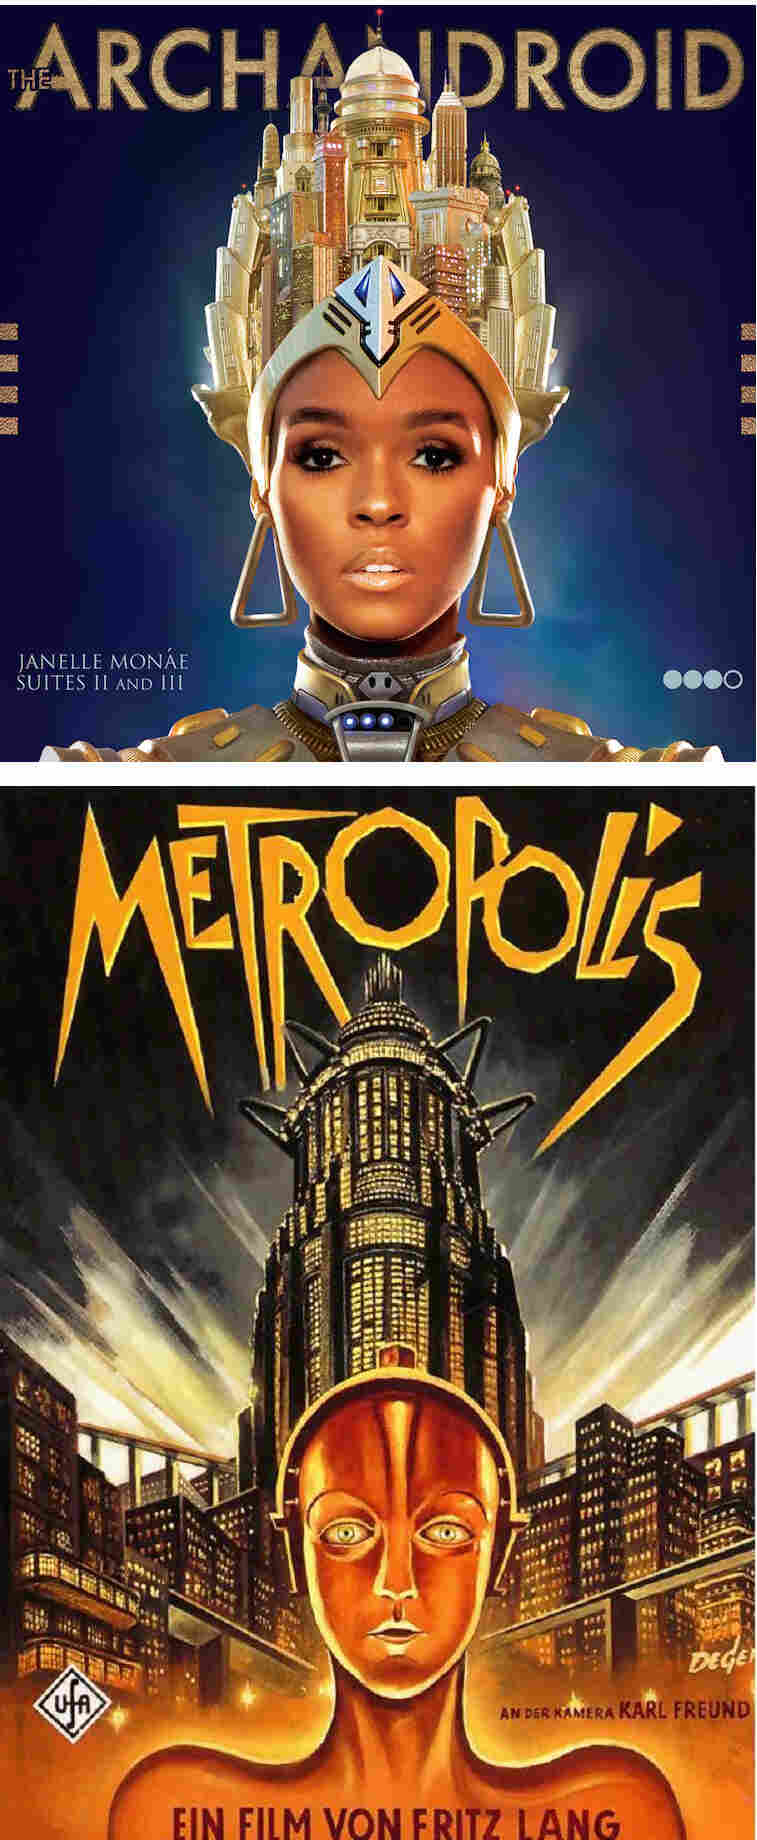 Janelle Monaé's Archandroid drew much of its inspiration and aesthetic style from Fritz Lang's Metropolis.